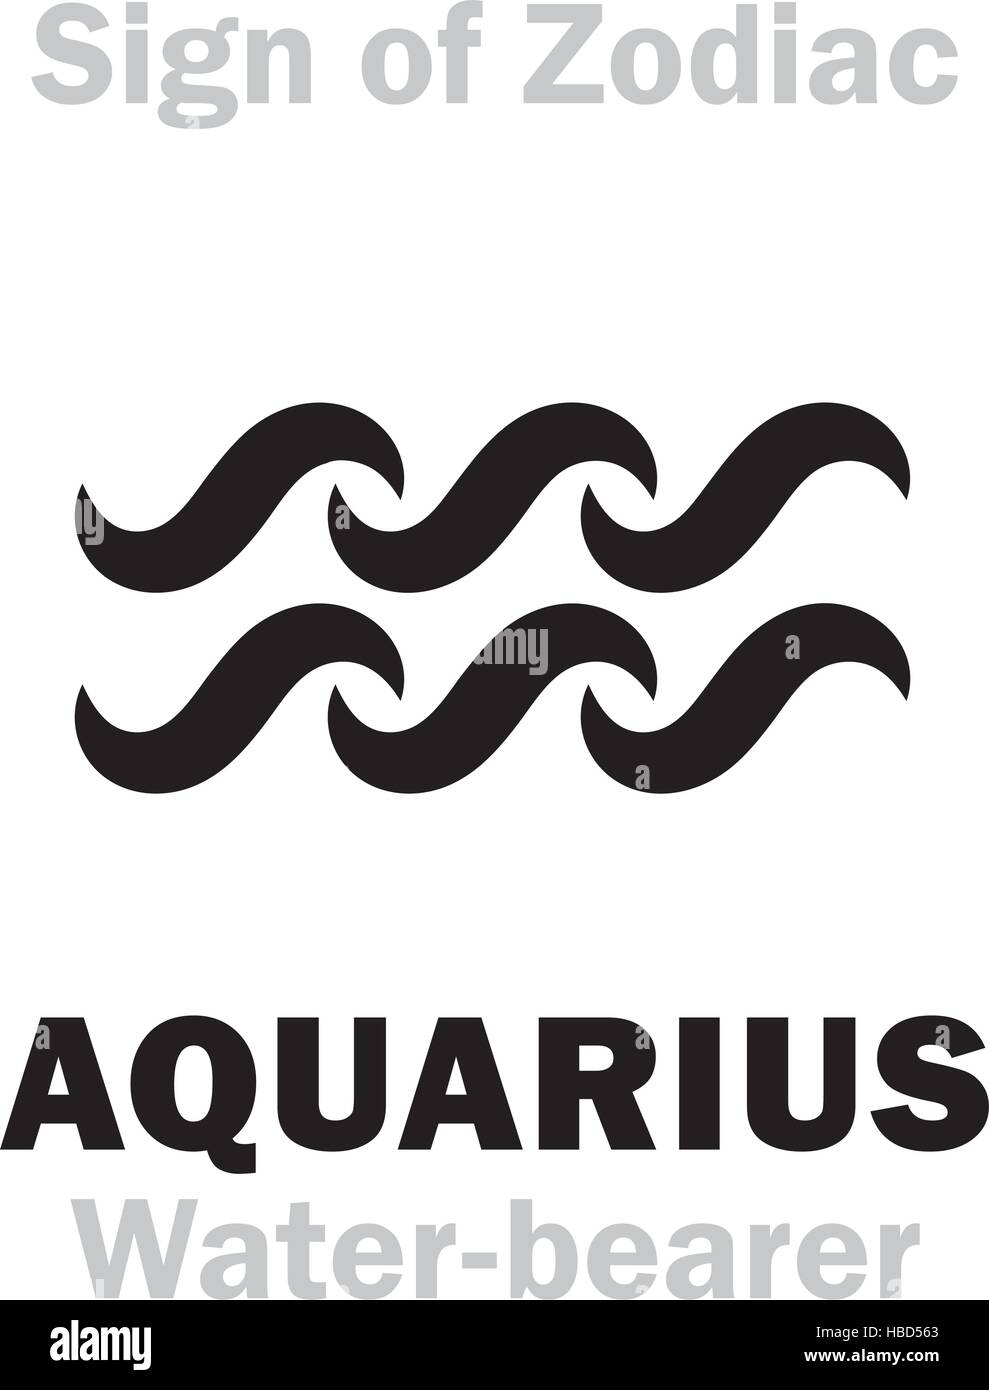 astrology alphabet sign of zodiac aquarius the water